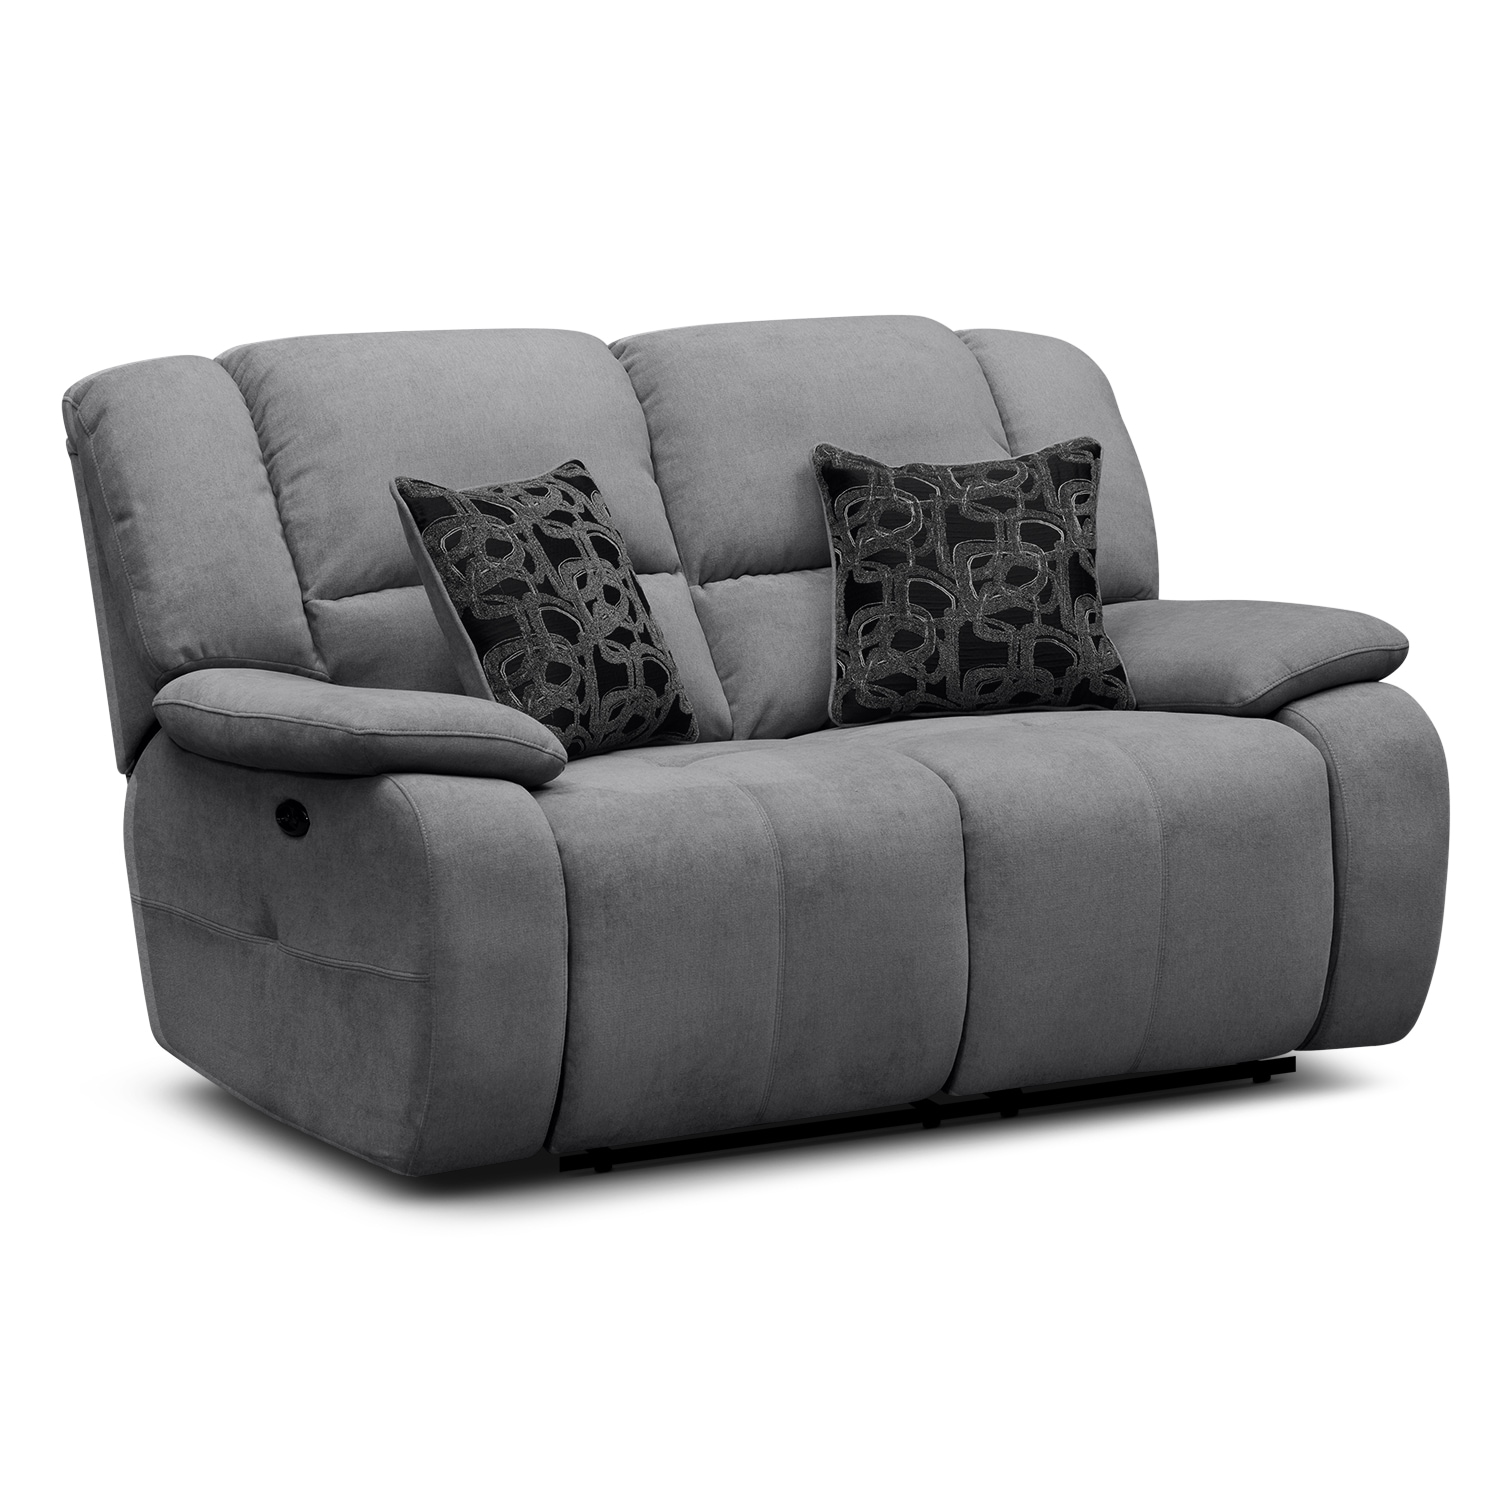 Living Room Furniture - Destin Gray Power Reclining Loveseat